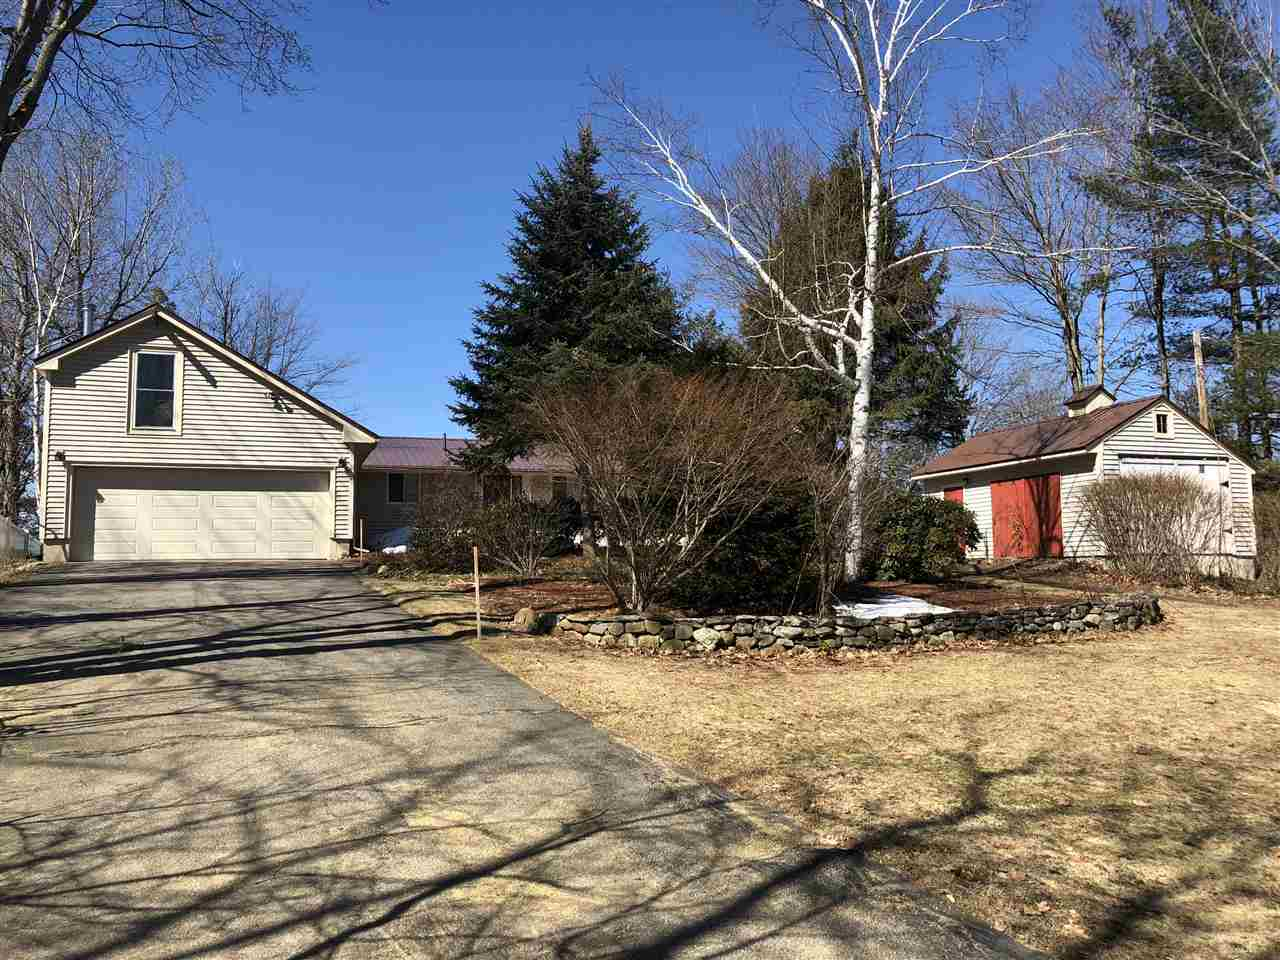 MLS 4676470: 86 Chapin Terrace, Laconia NH